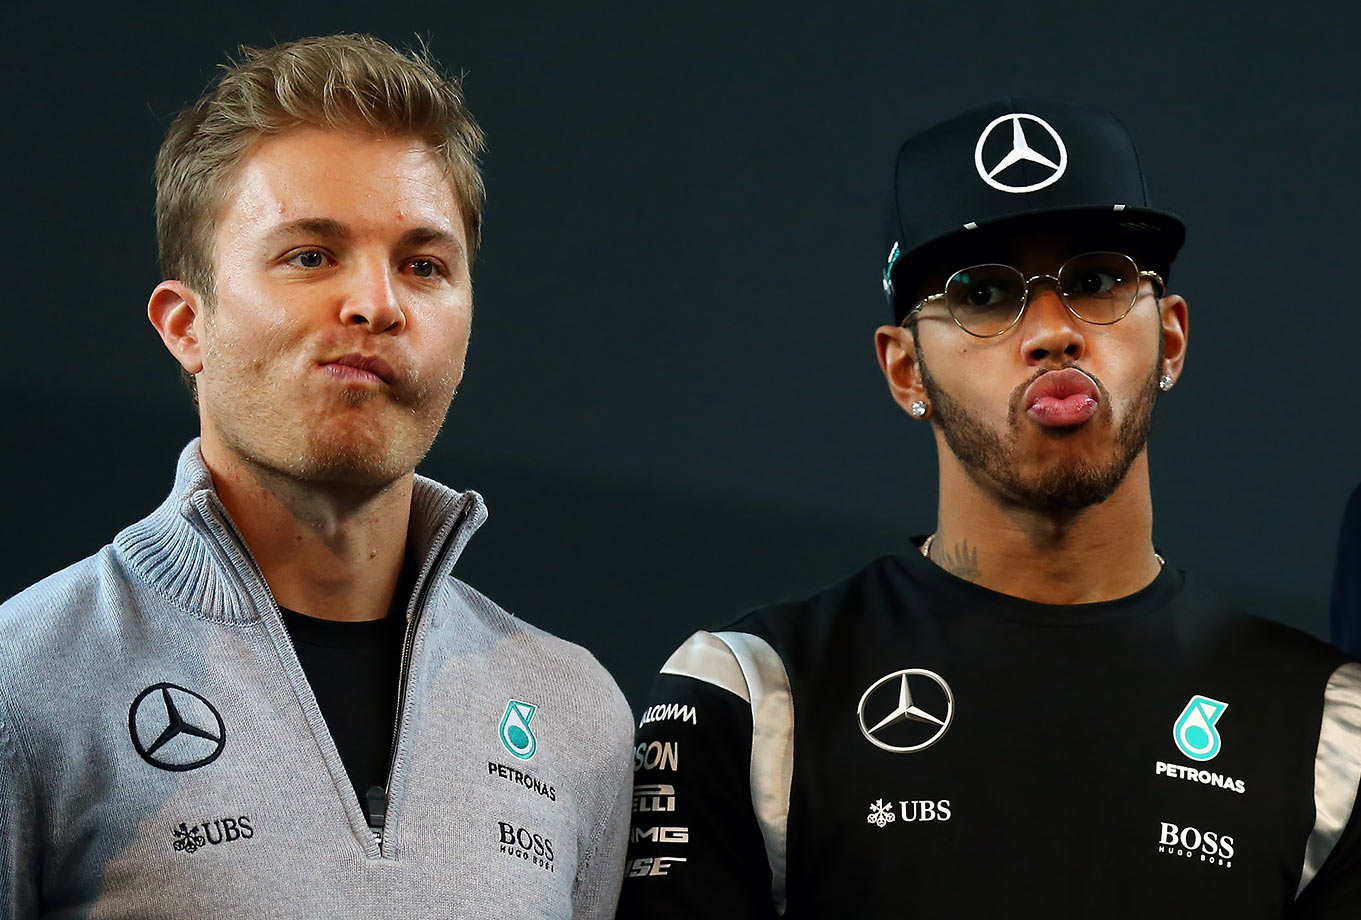 Nico Rosberg poses with Mercedes GP teammate Lewis Hamilton during the Mercedes Benz Motorsport Kickoff in Stuttgart, Germany.